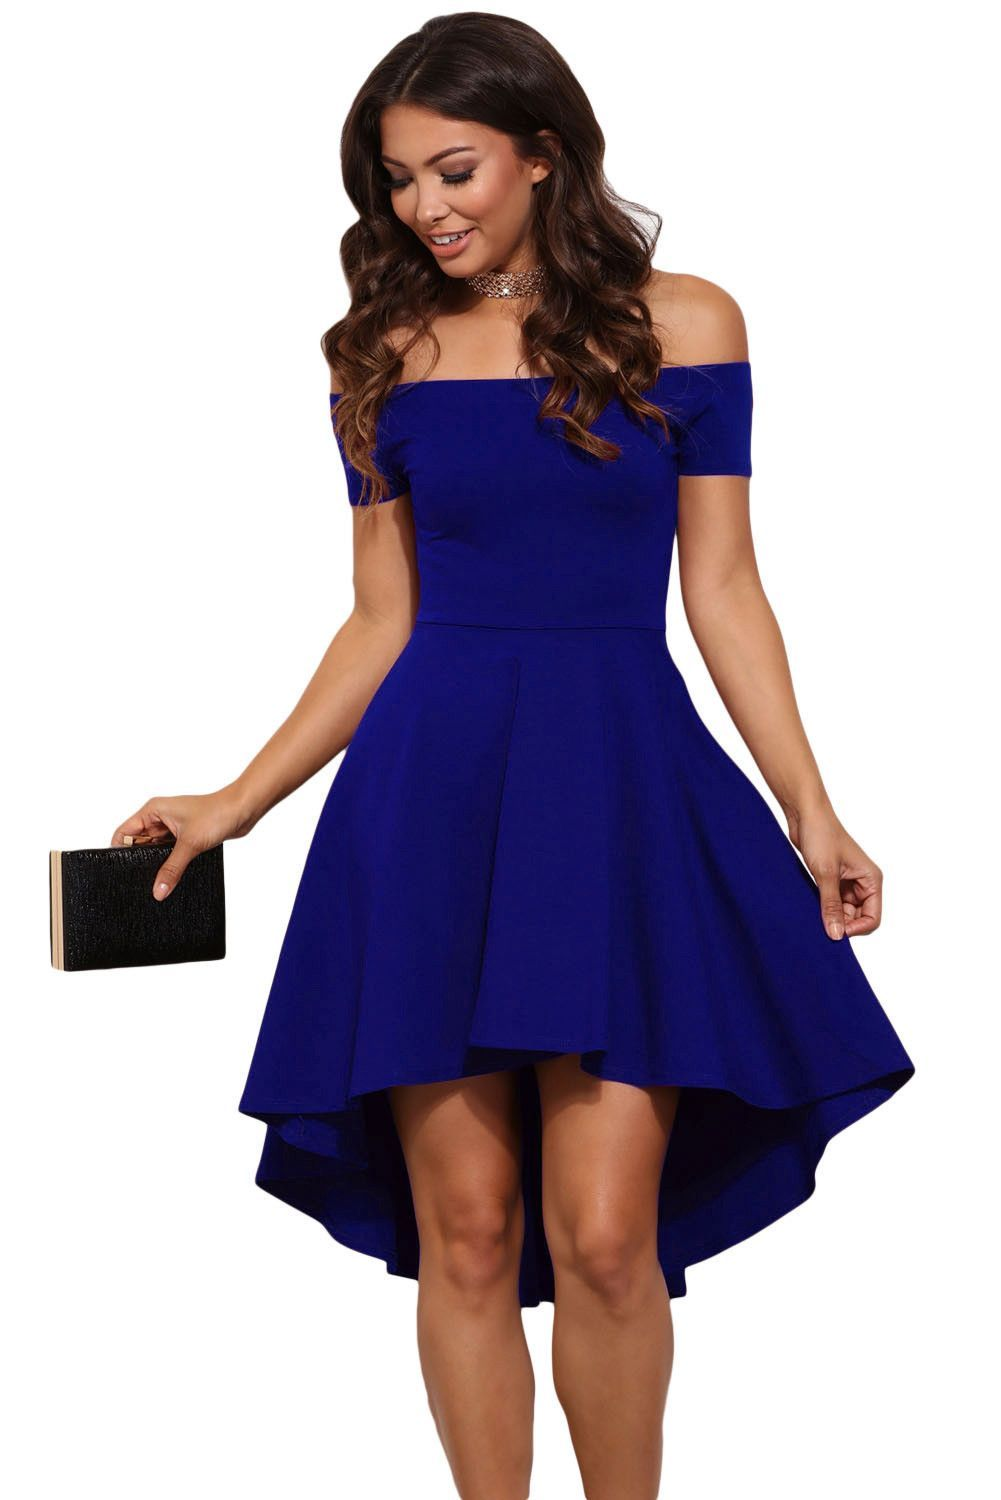 Blue All The Rage Skater High Low Cocktail Dress | Vestiditos ...